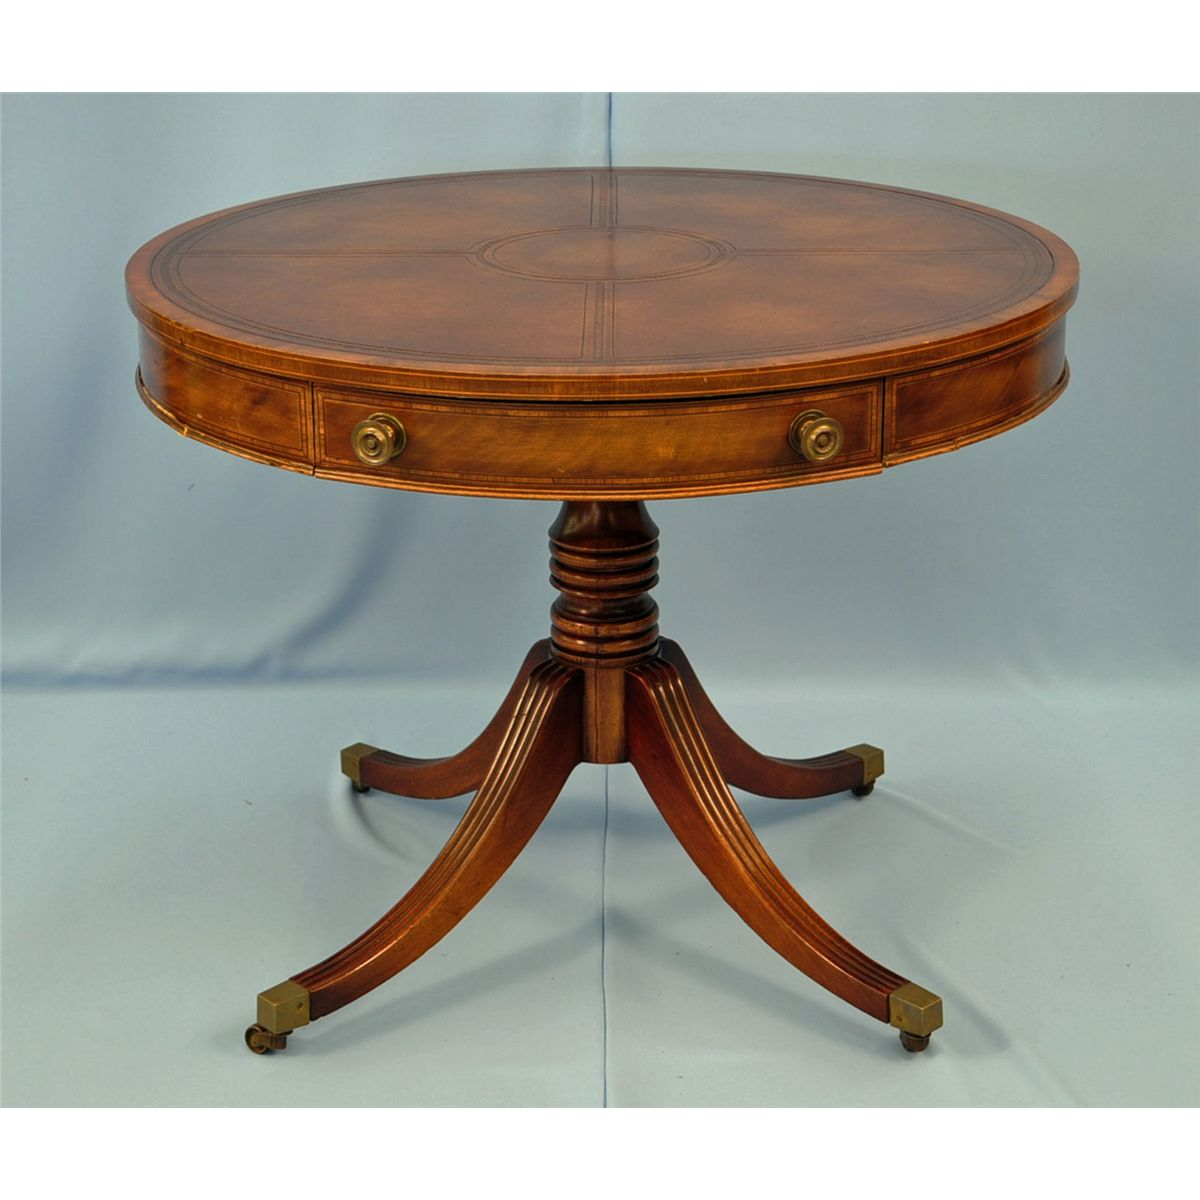 - Pendleton Irwin Round Leather Drum Table